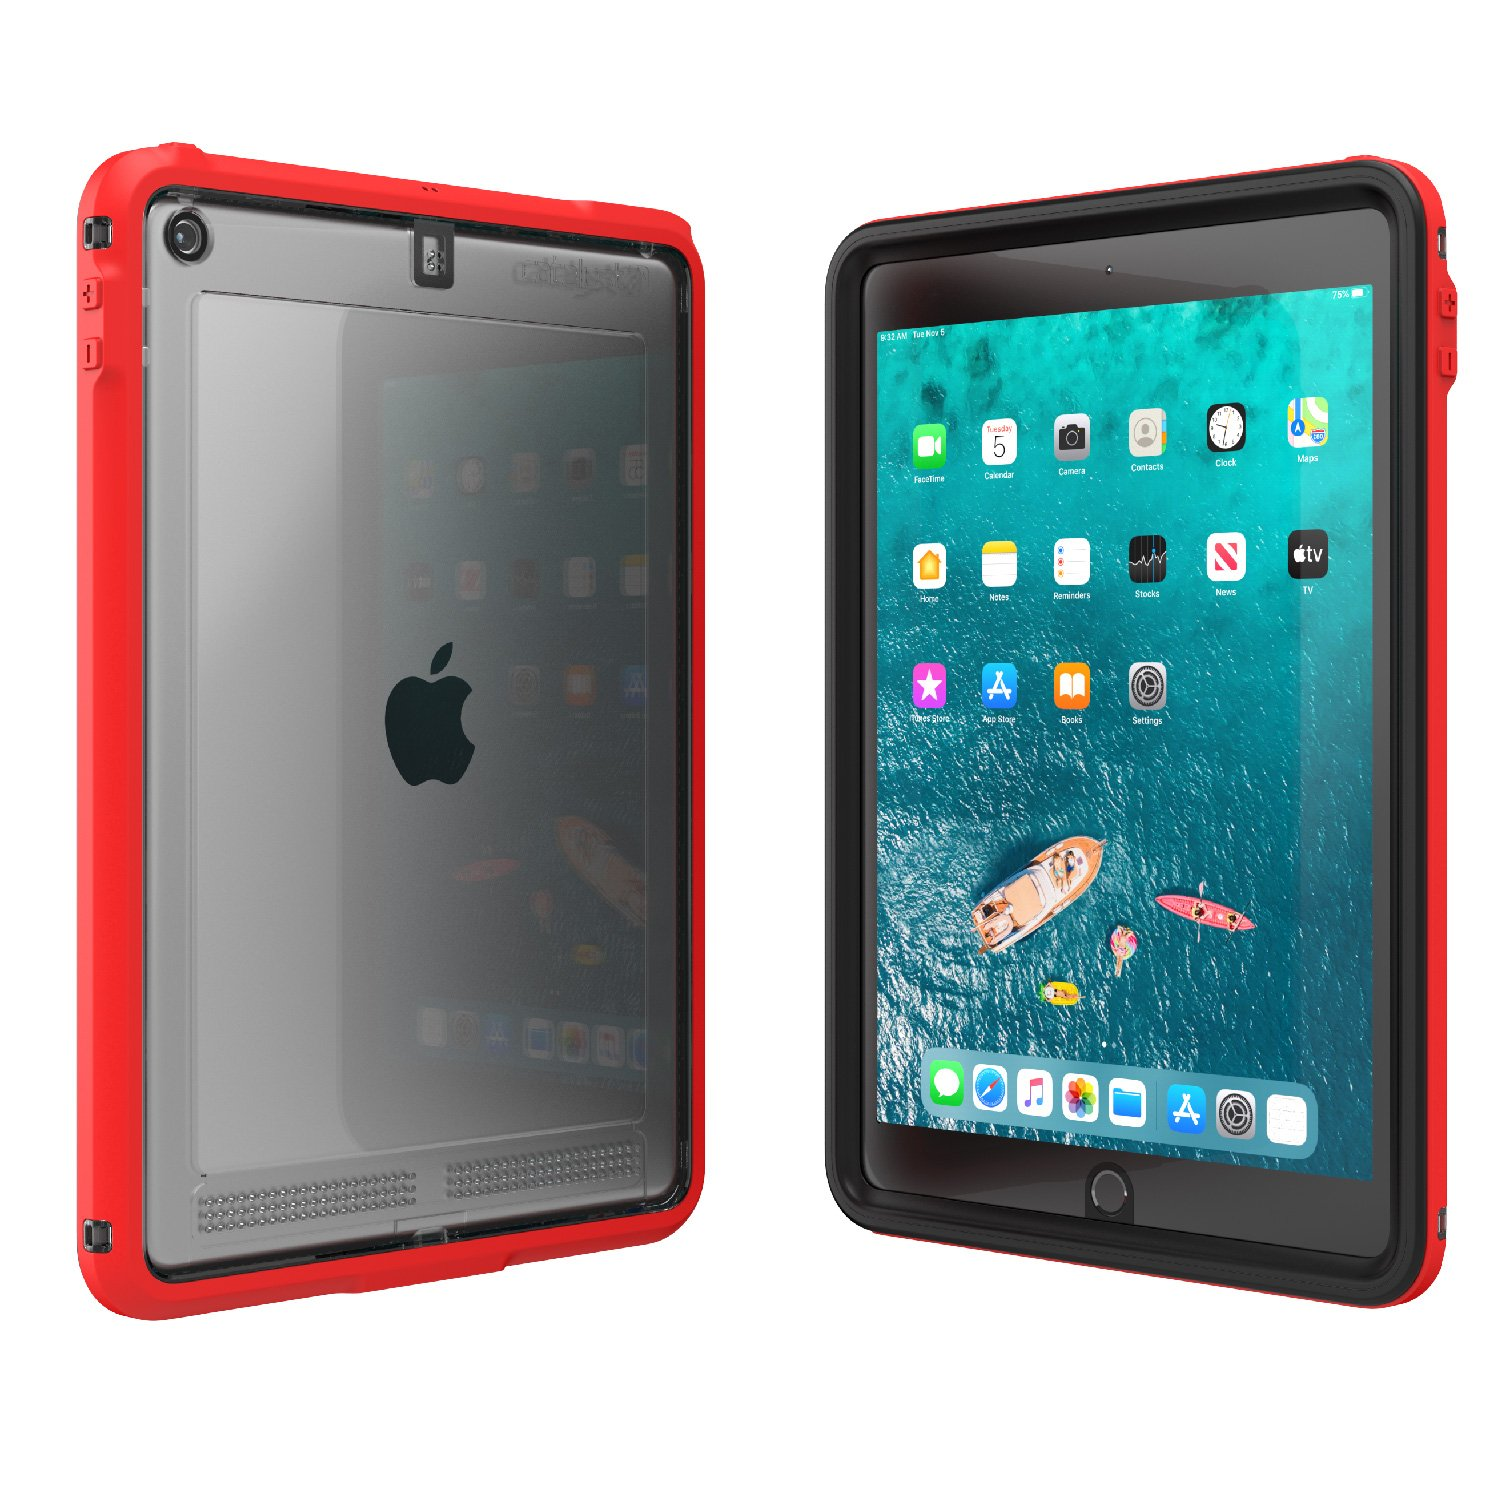 The best rated waterproof iPad case: Catalyst's drop proof and water proof iPad case